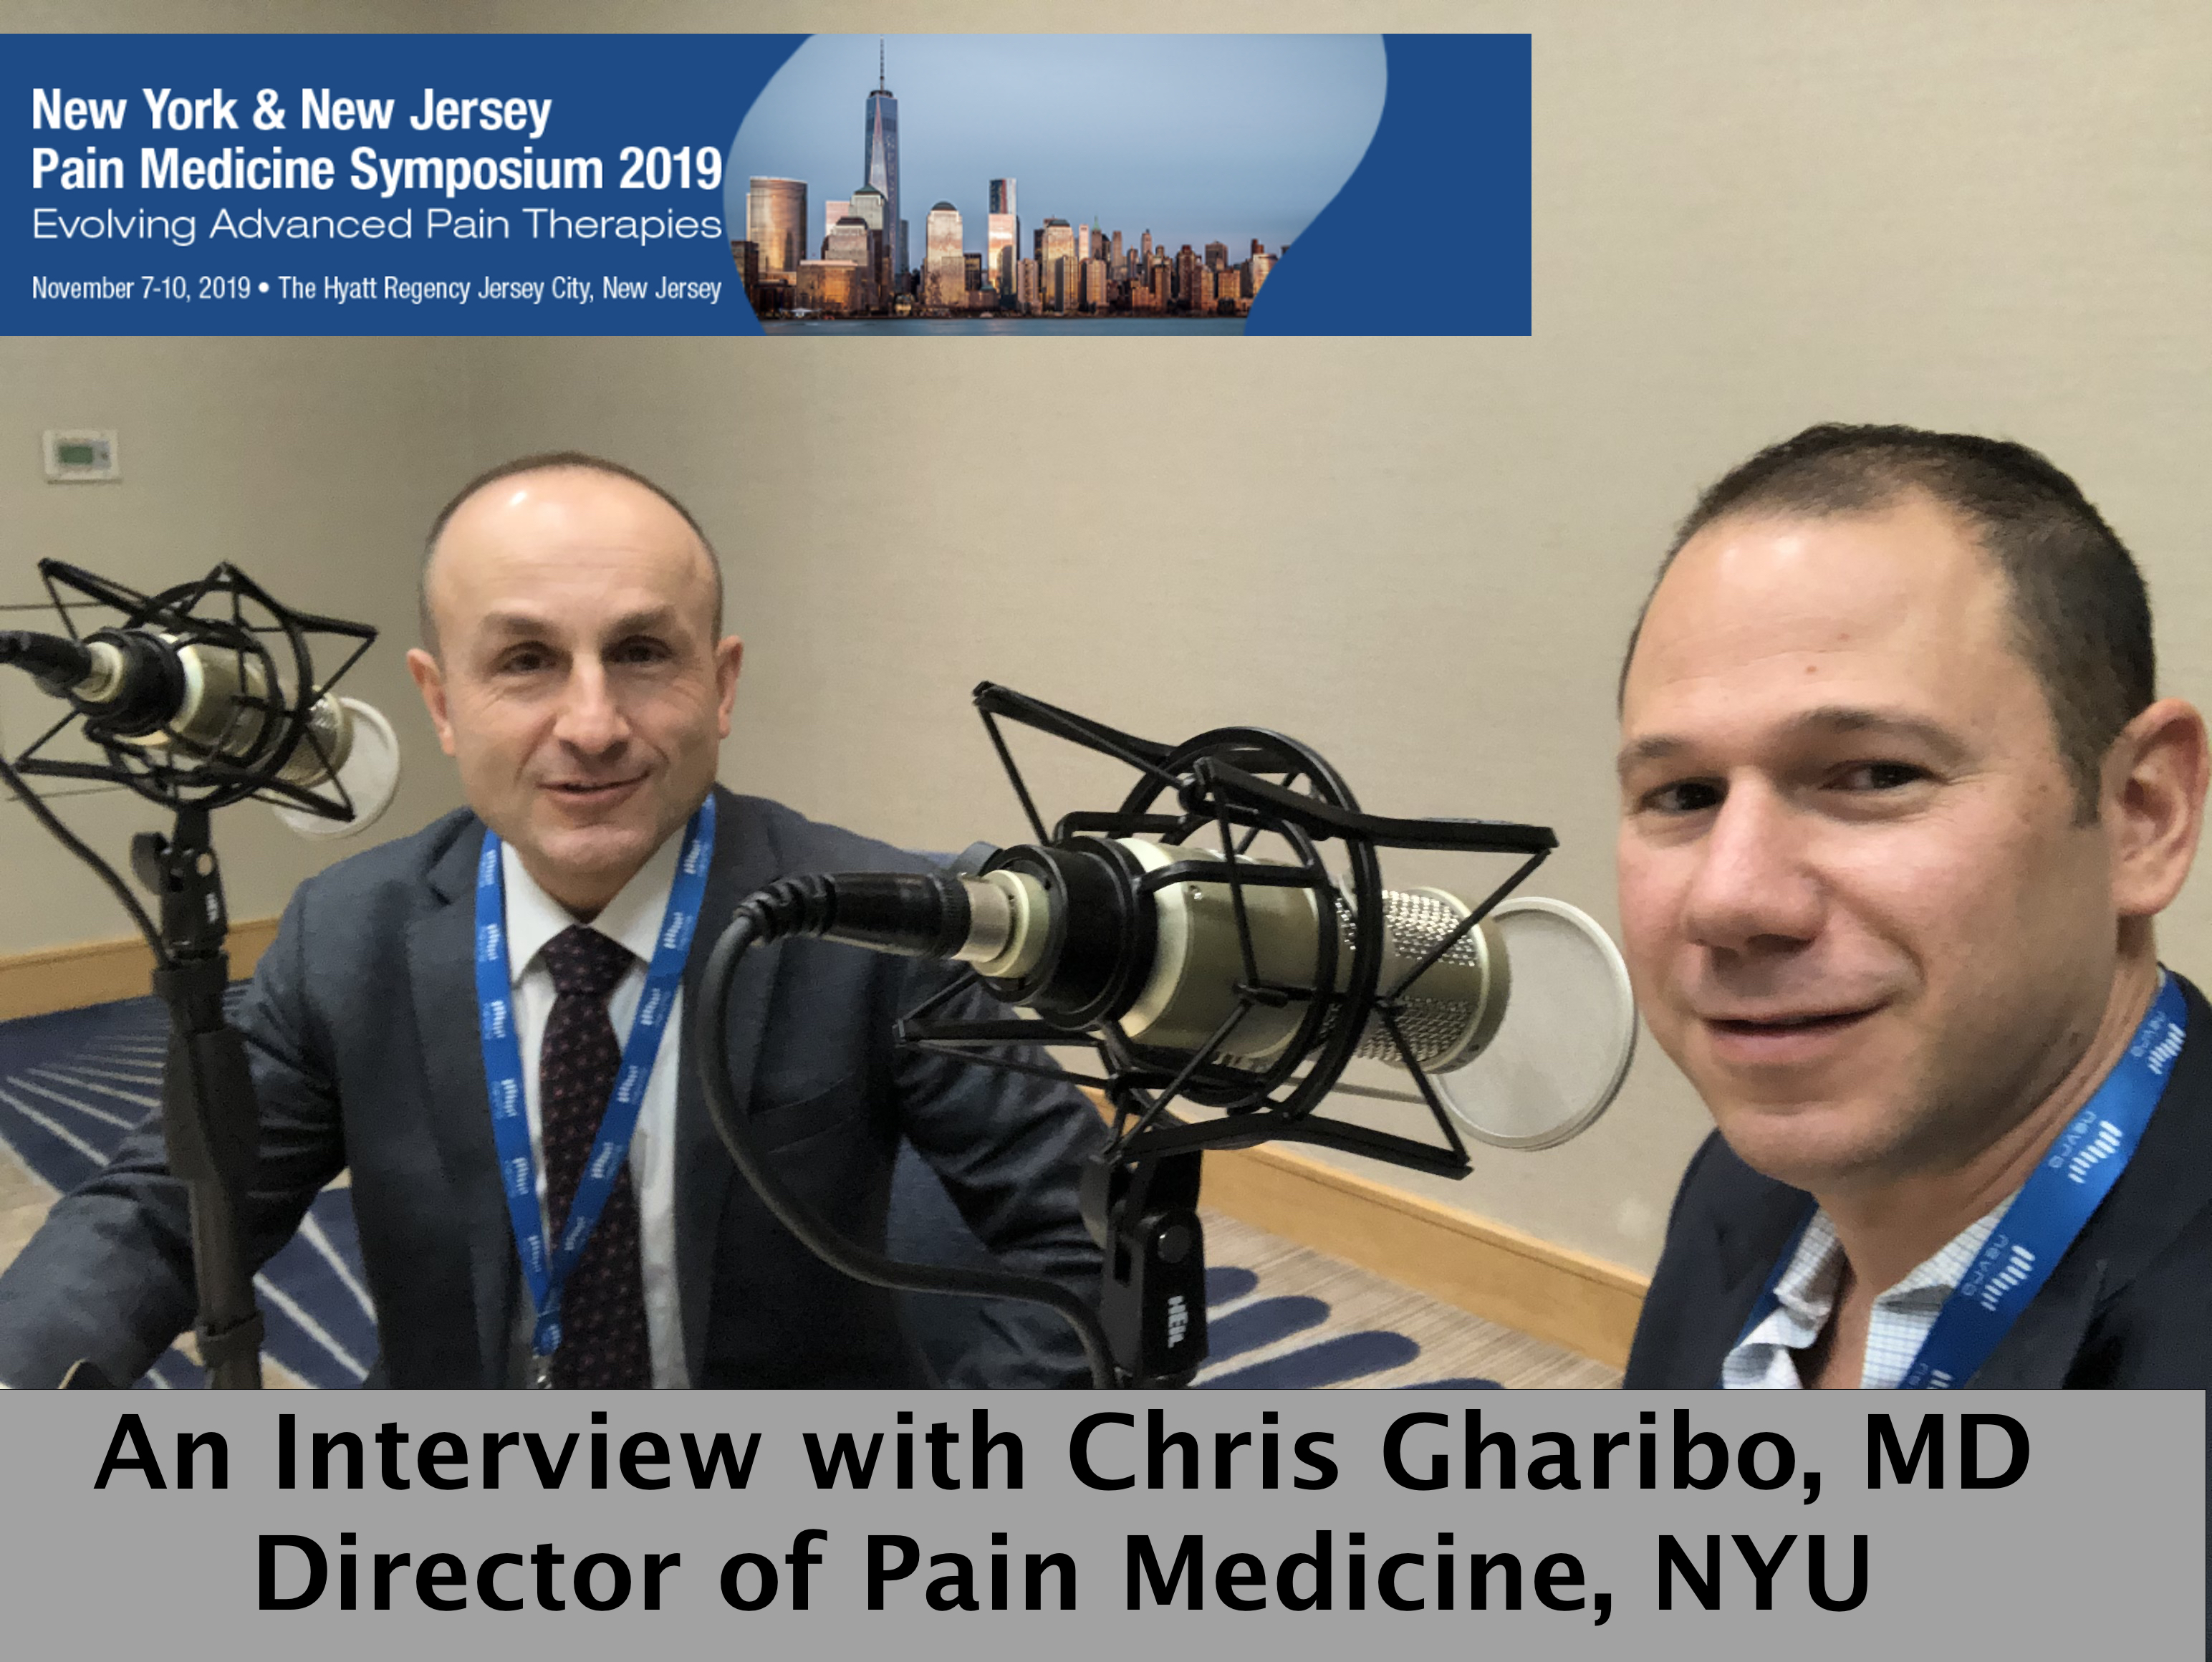 An Interview with Chris Gharibo, MD